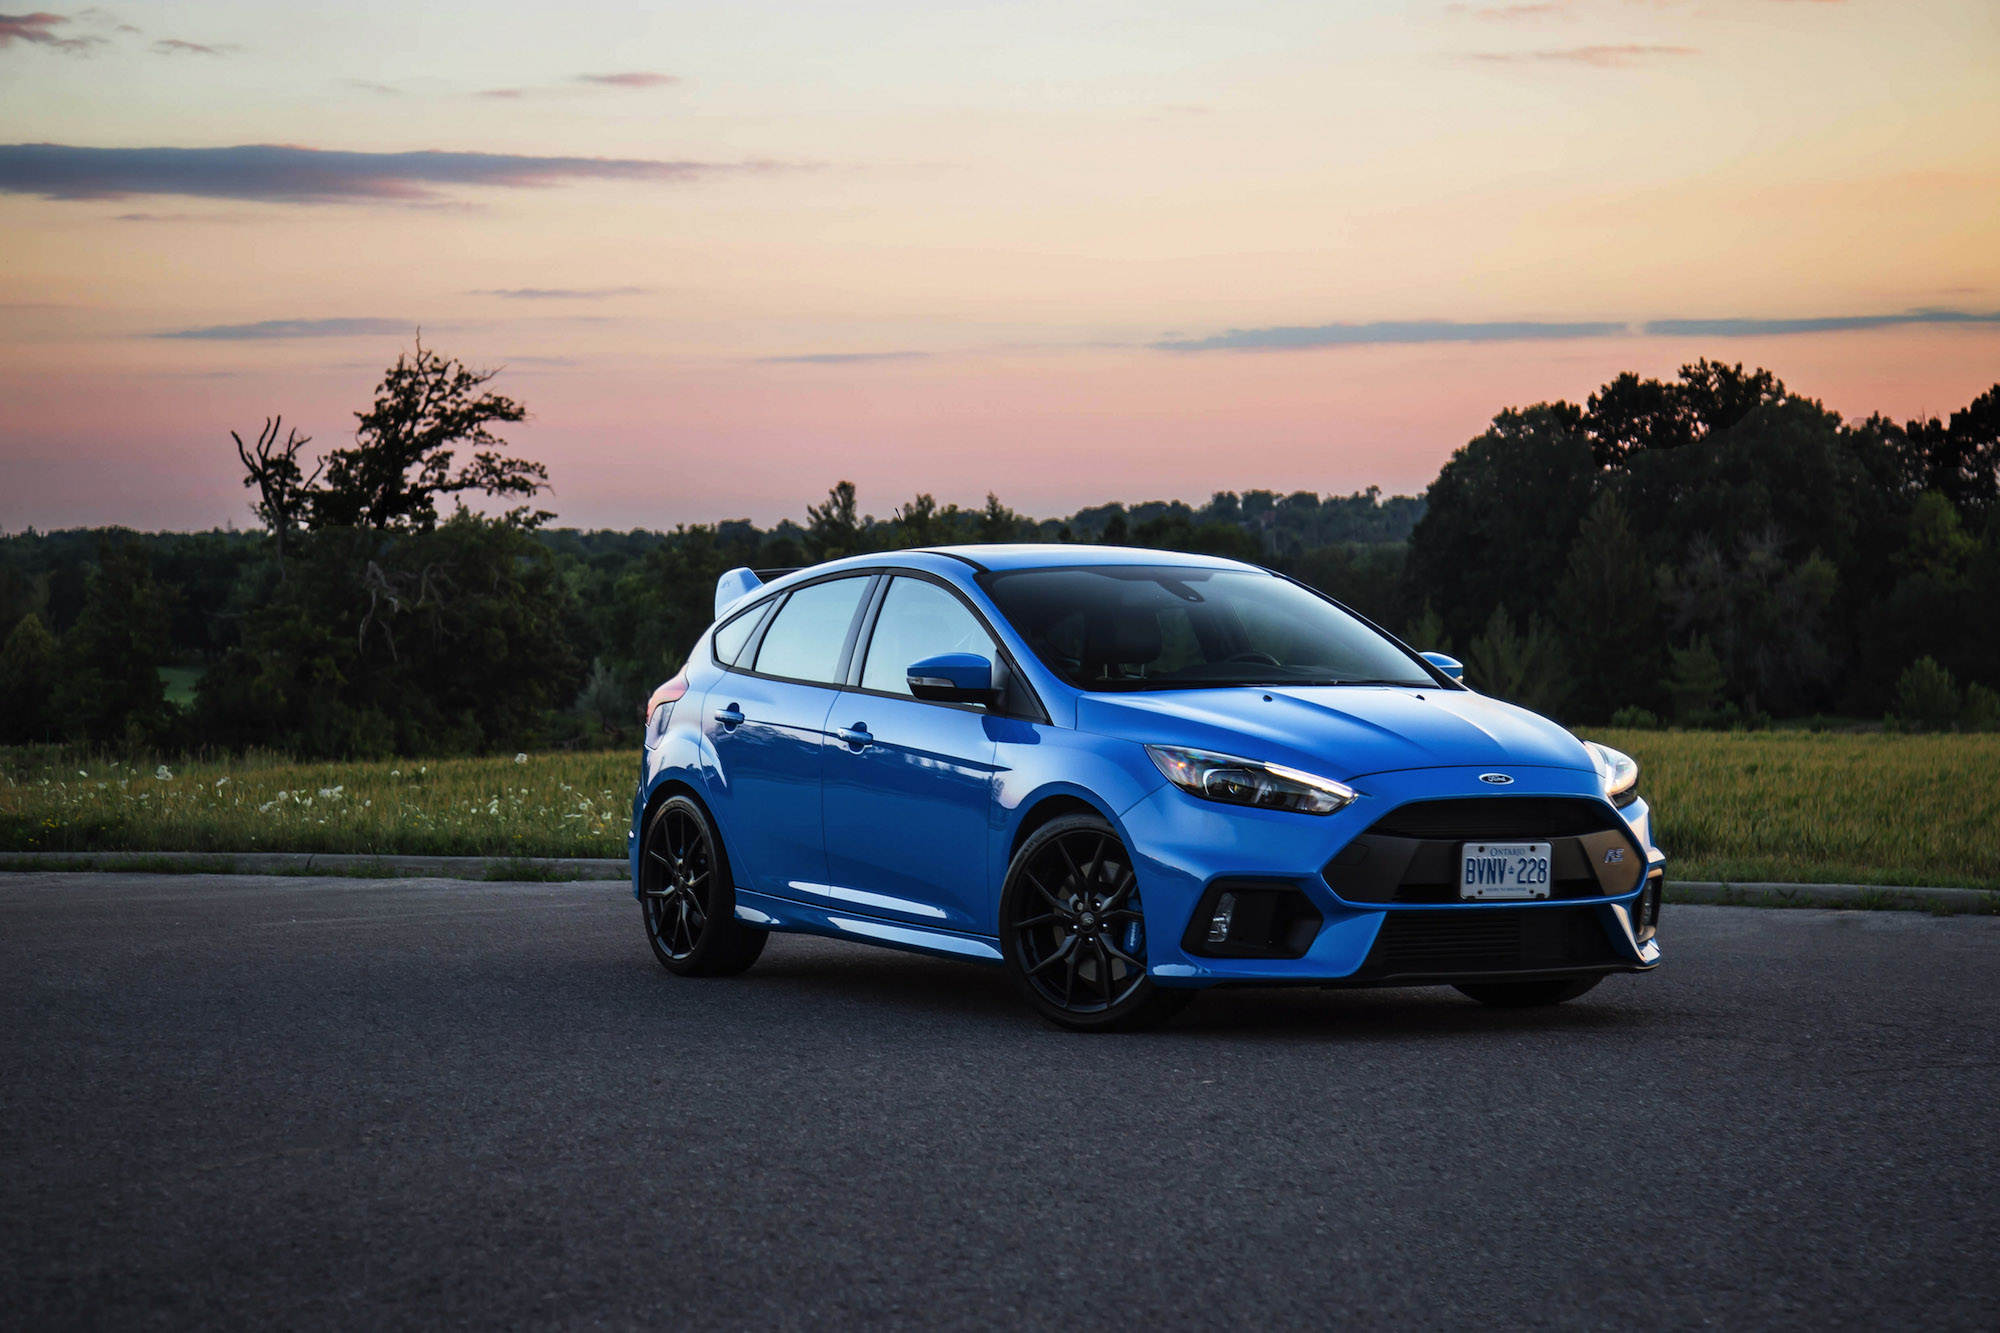 is focus rs making themotorhood ford waves the price motorhood format